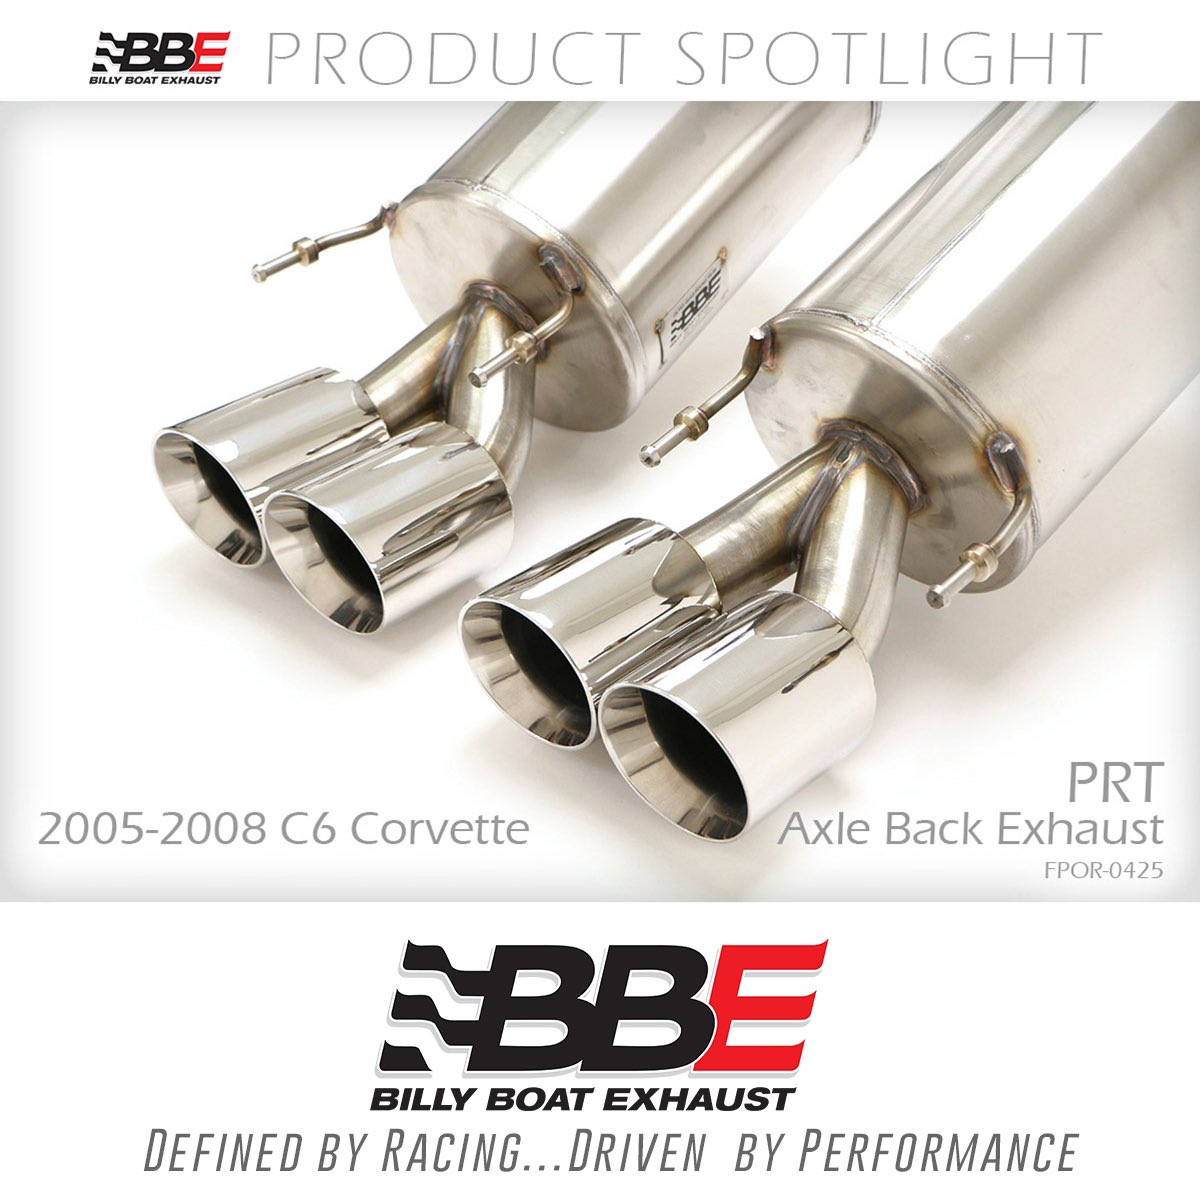 billy boat exhaust bbexhaust twitter